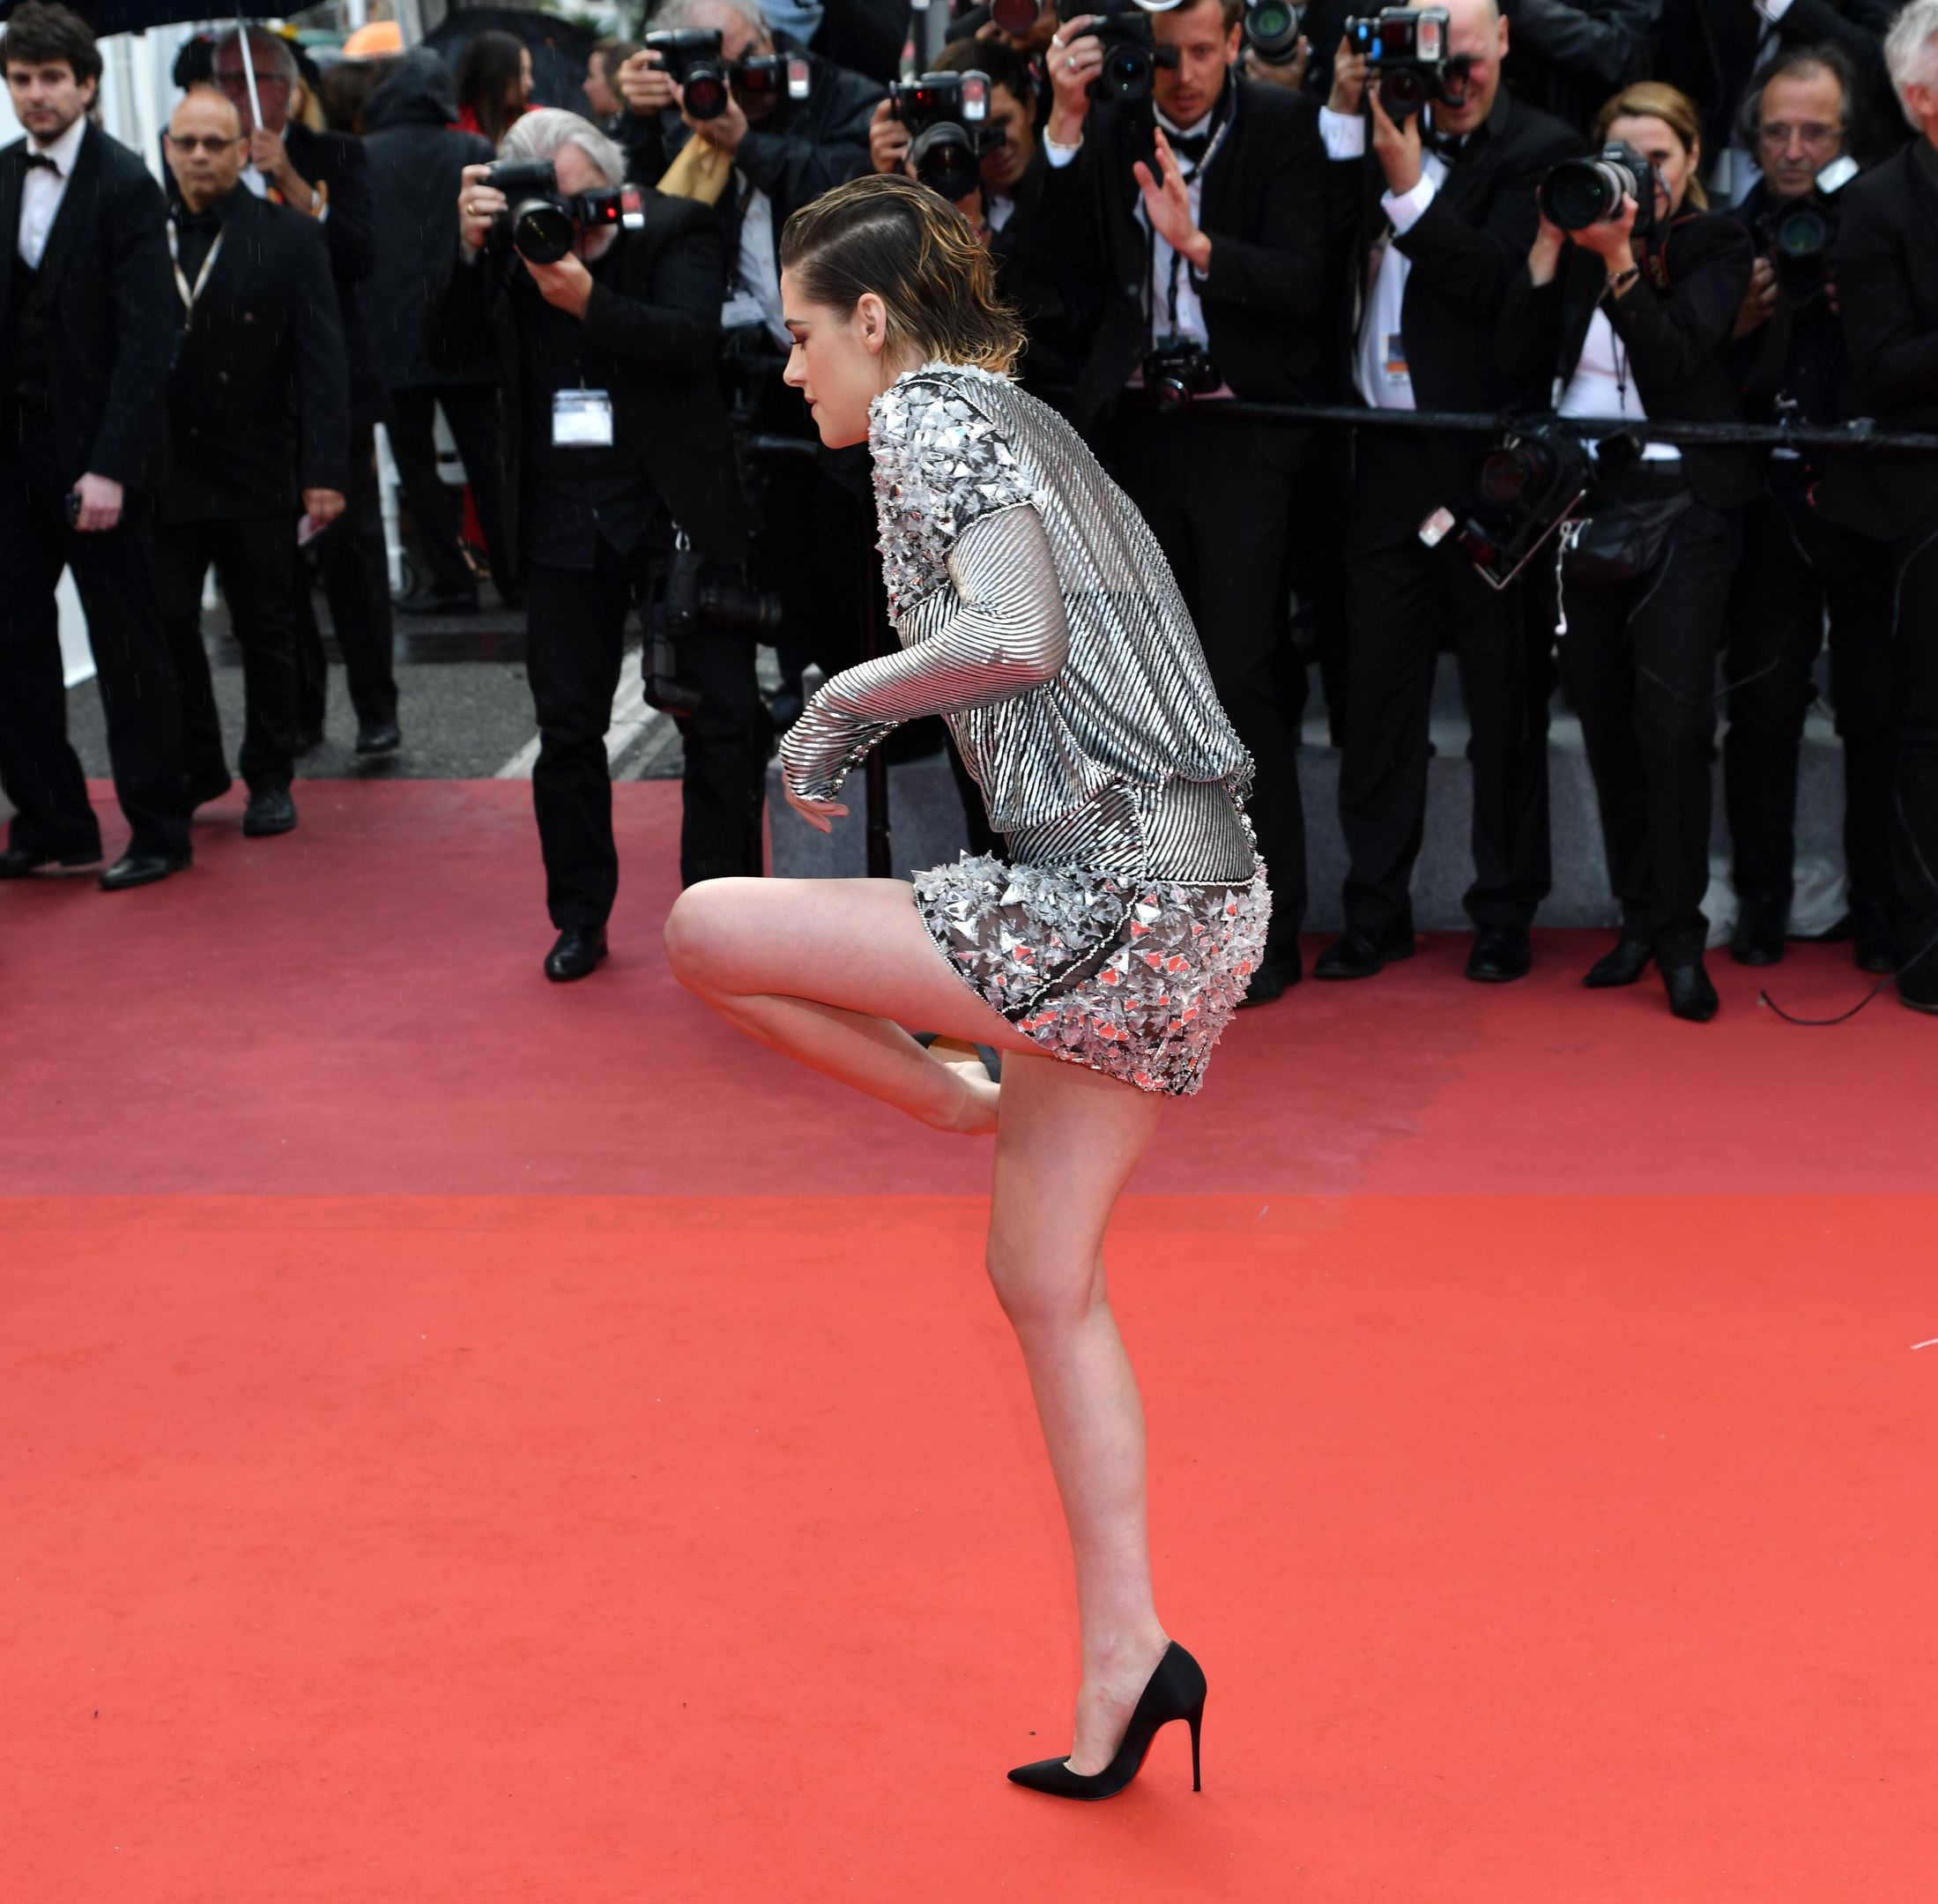 Kristen Stewart makes a political statement, ditches heels on Cannes red carpet